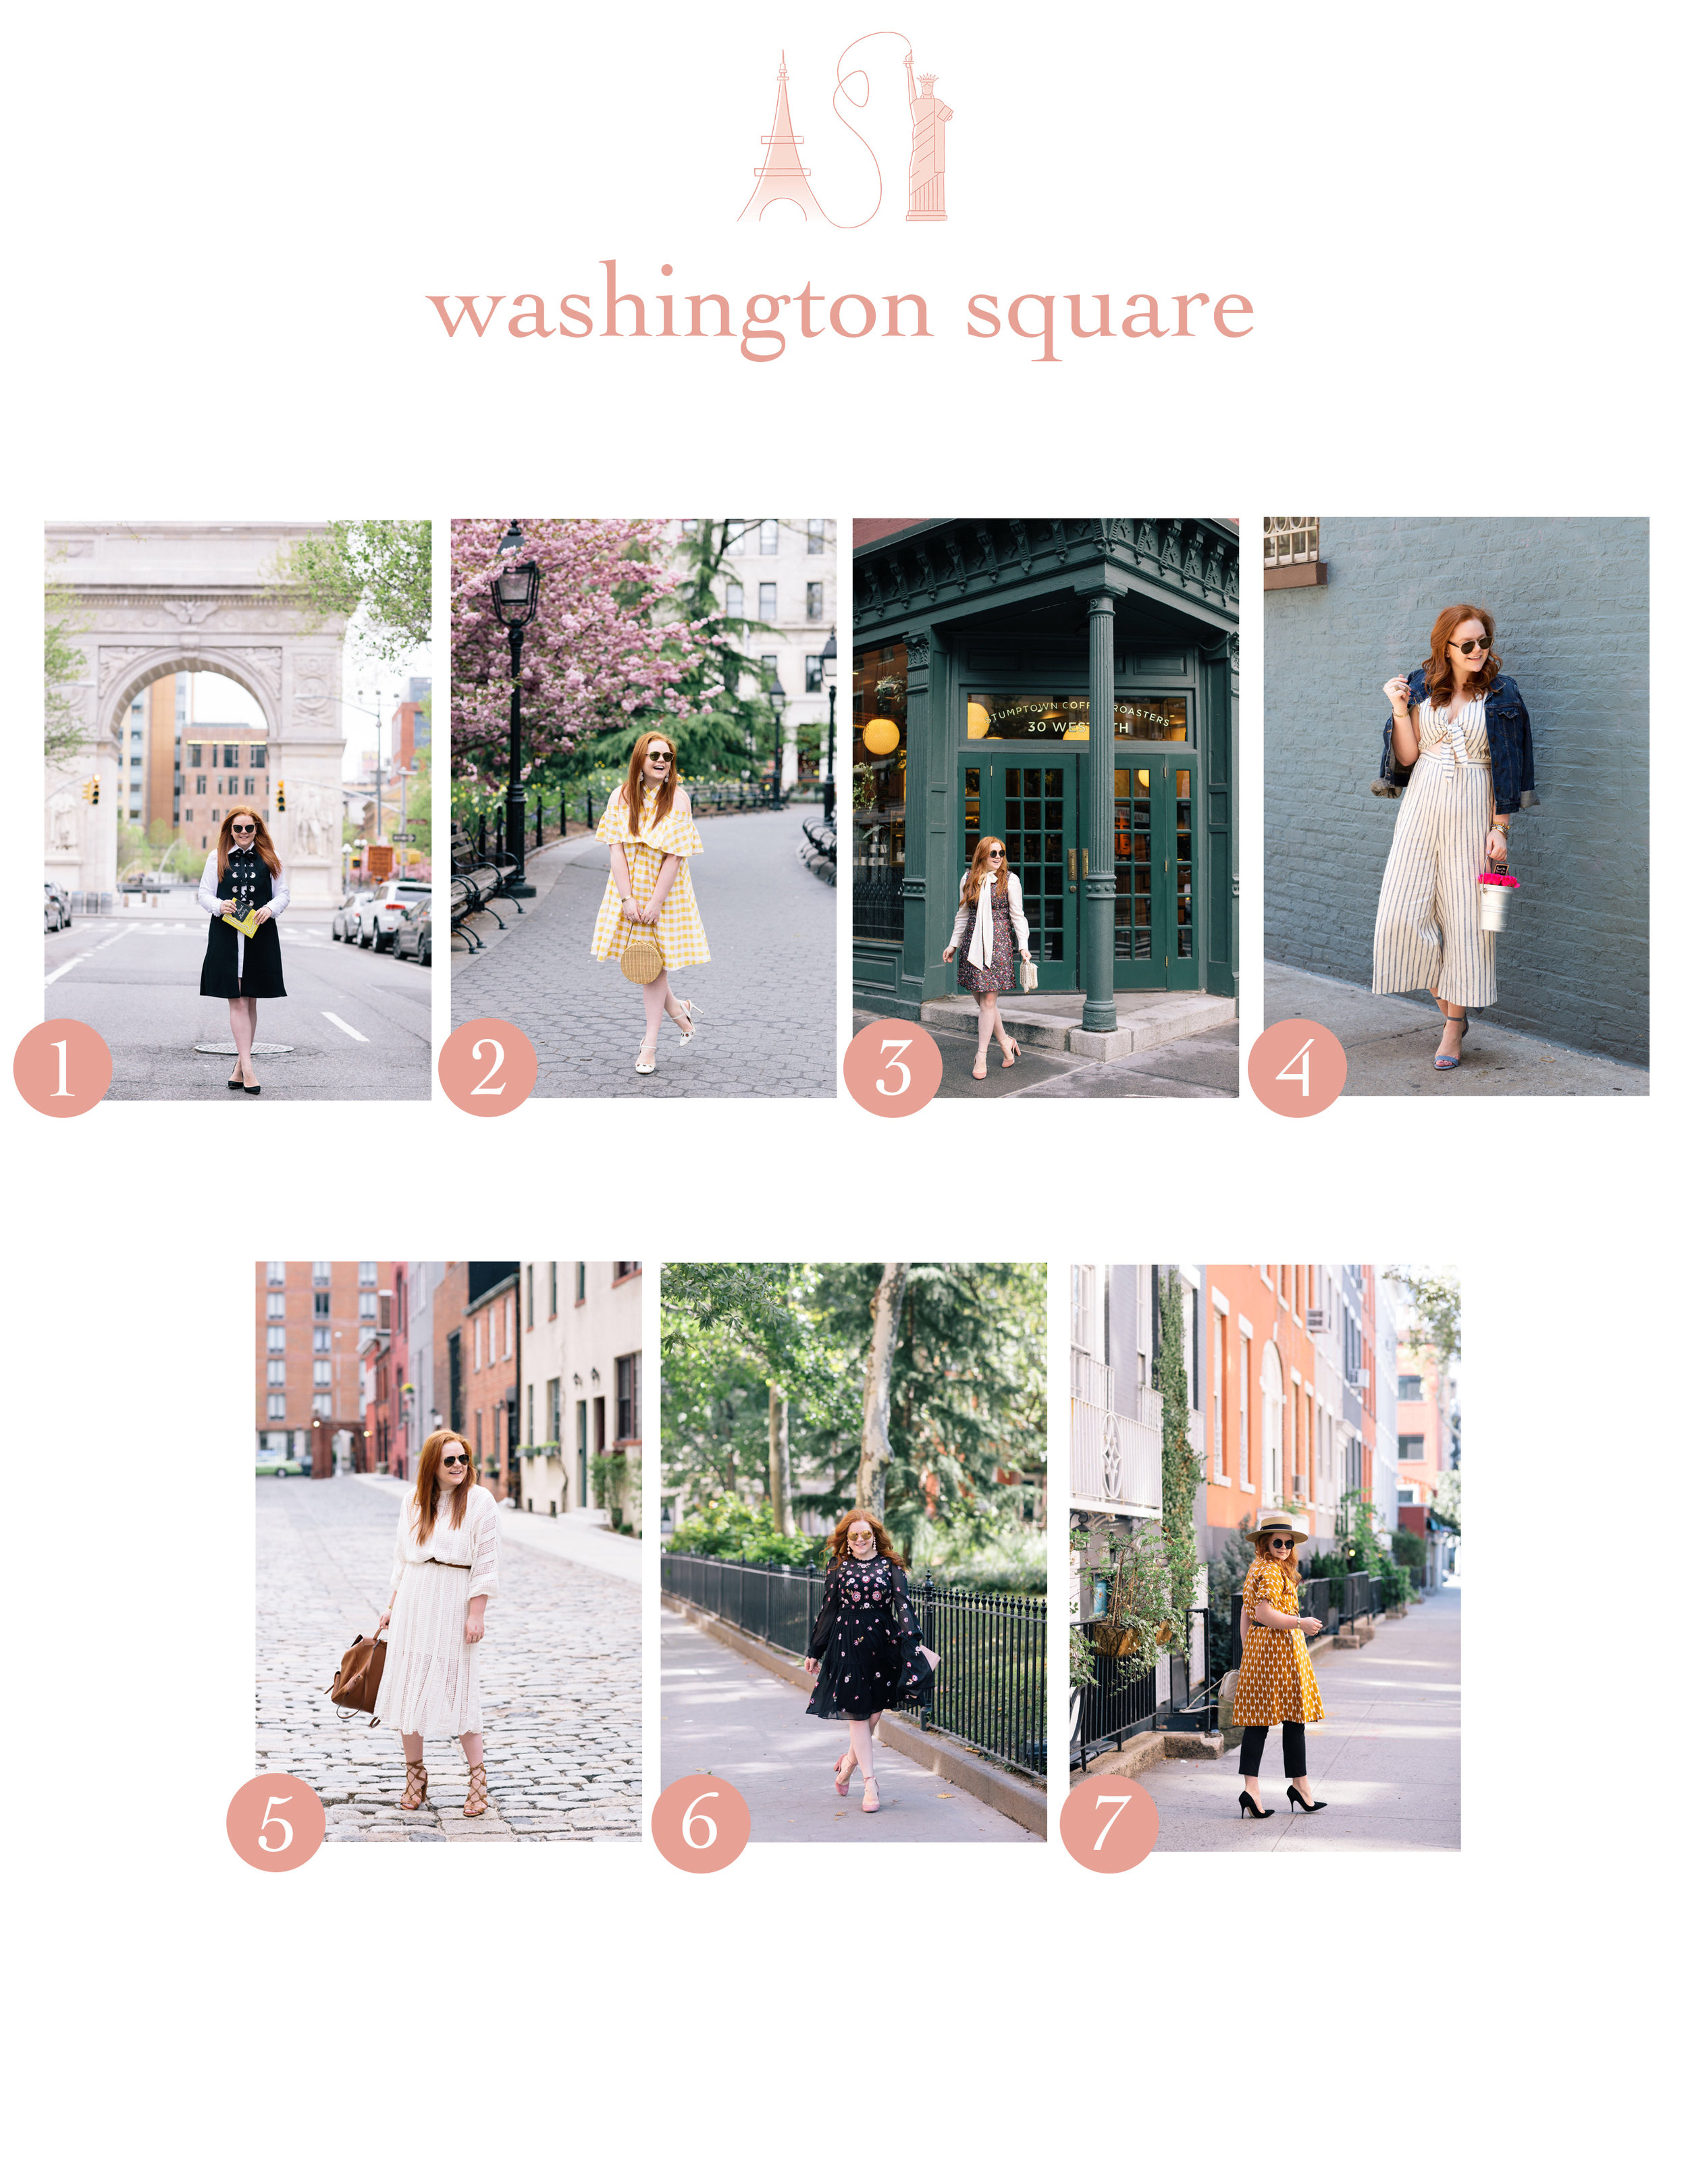 washington_square_photo_locations.jpg